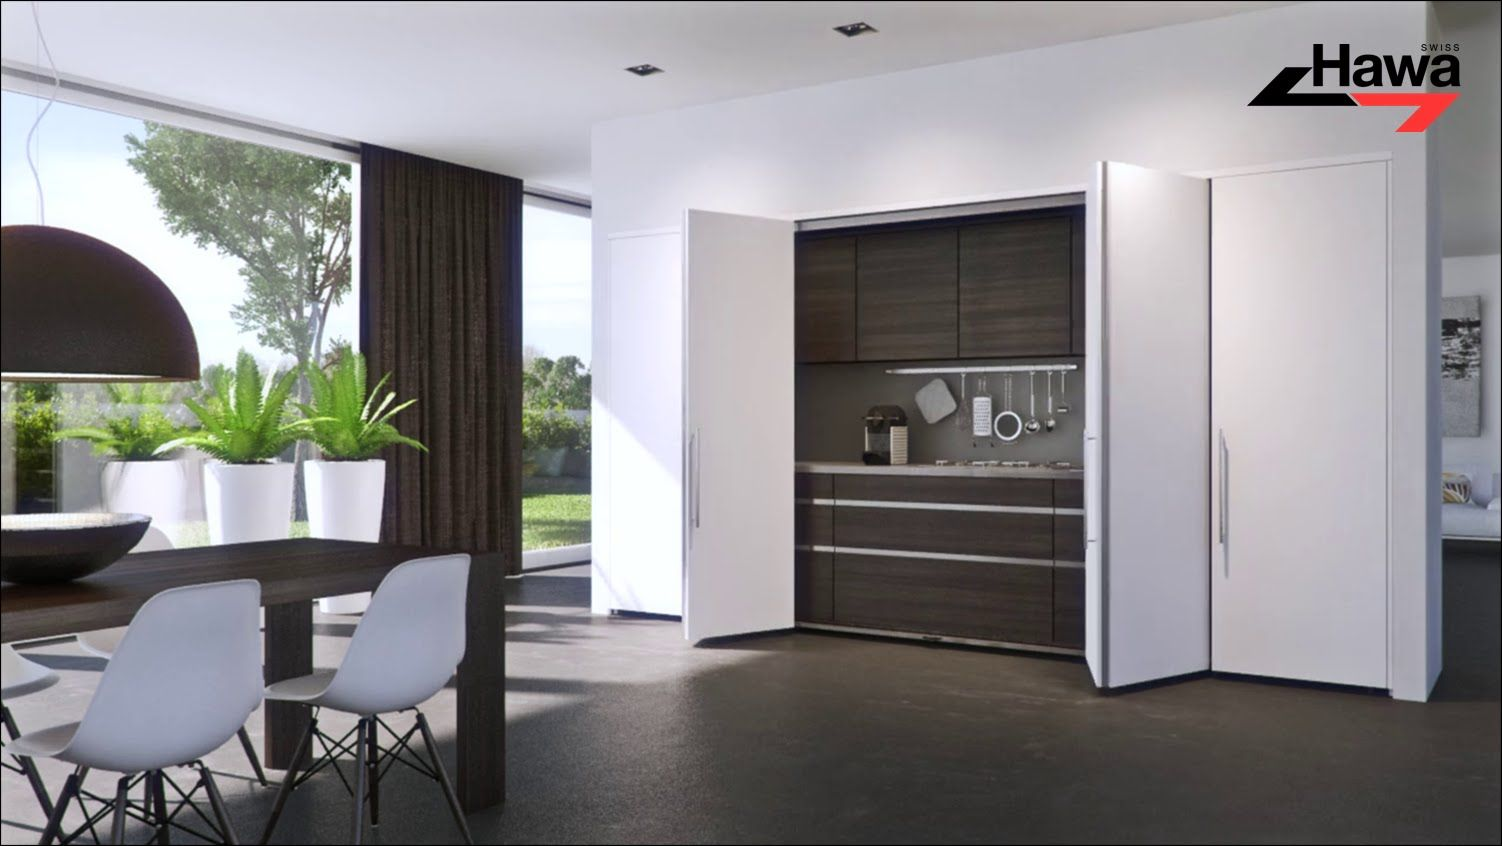 Flush When Closed Completely Open Hardware Systems For Pivot Sliding Cabinet Doors Weighing Up To 25 30 40 And 50 Kg Home Sliding Cabinet Doors Home Decor